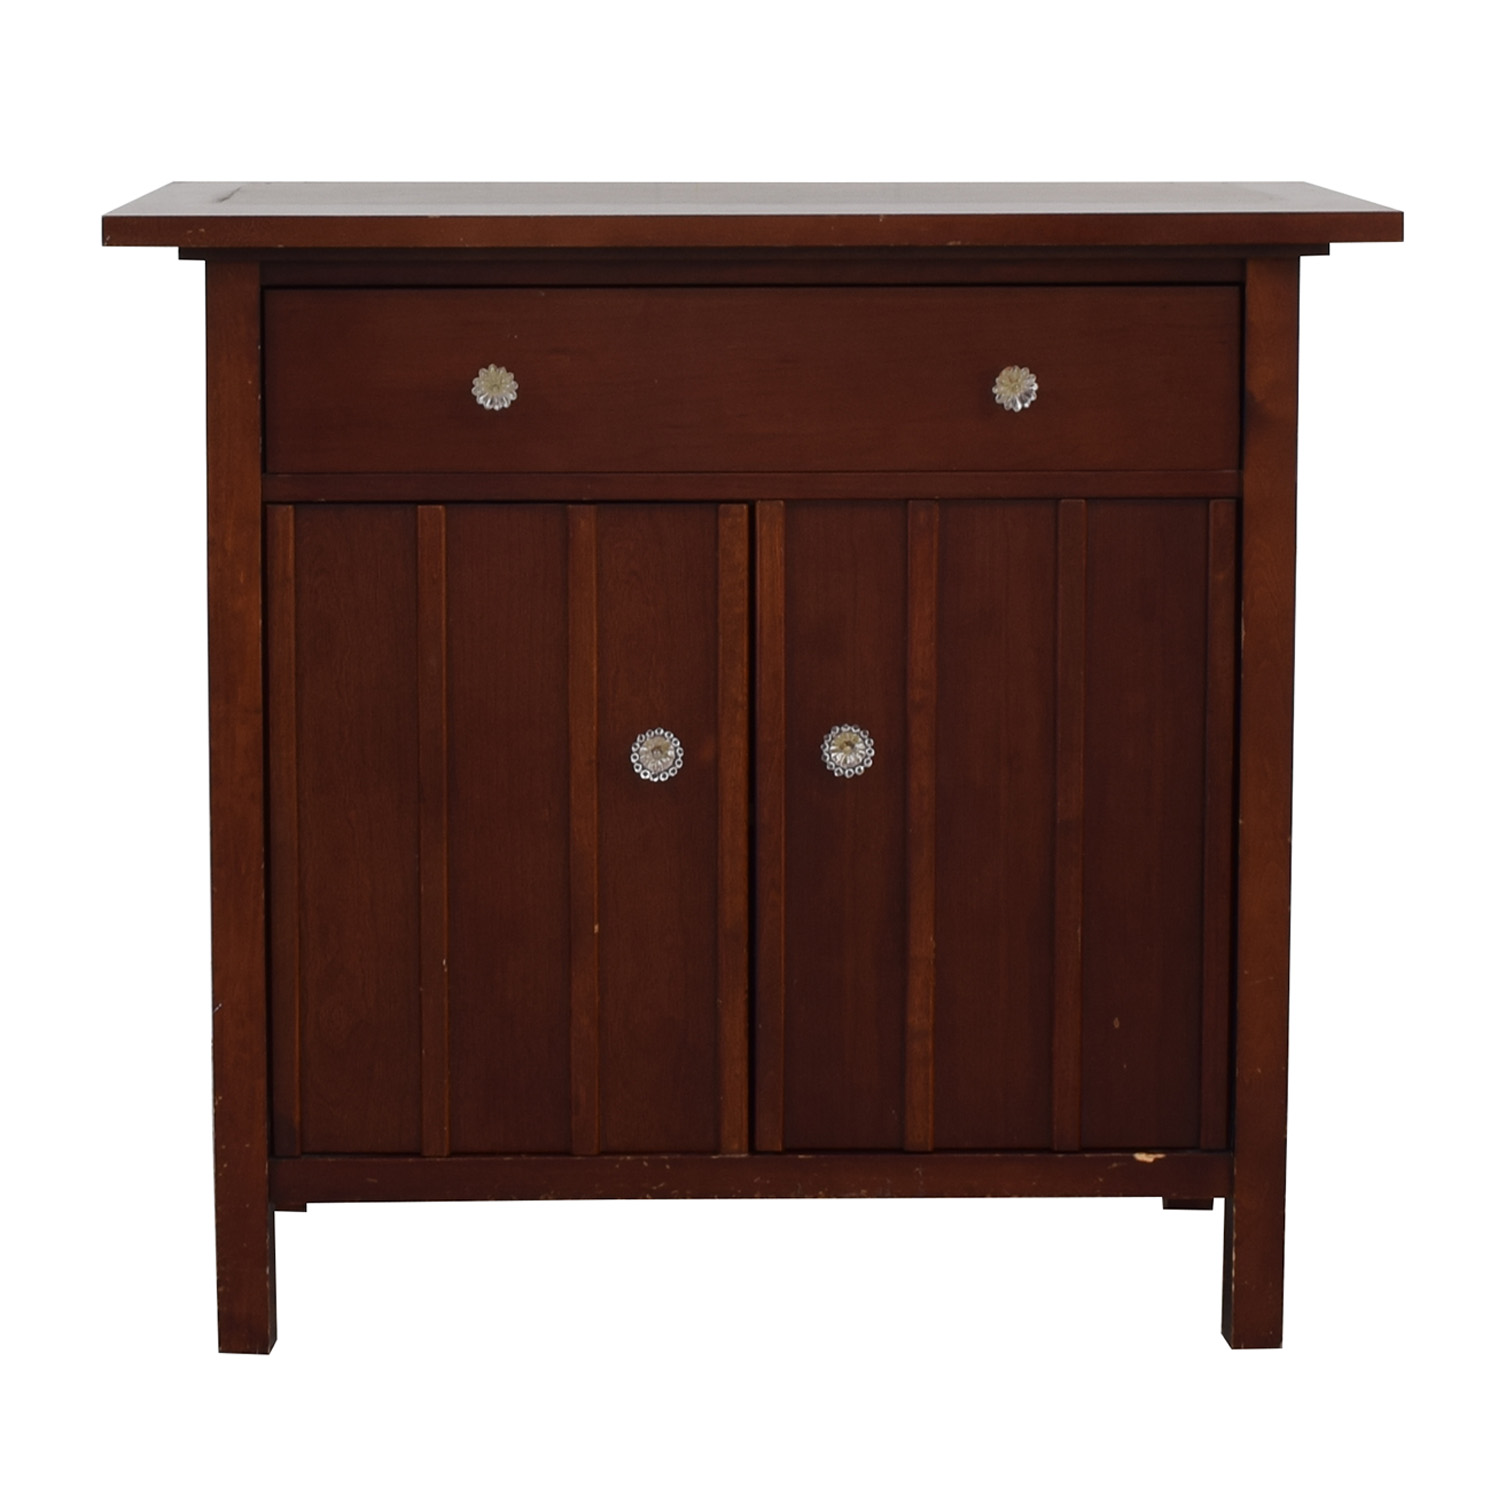 Crate & Barrel Cabinet sale